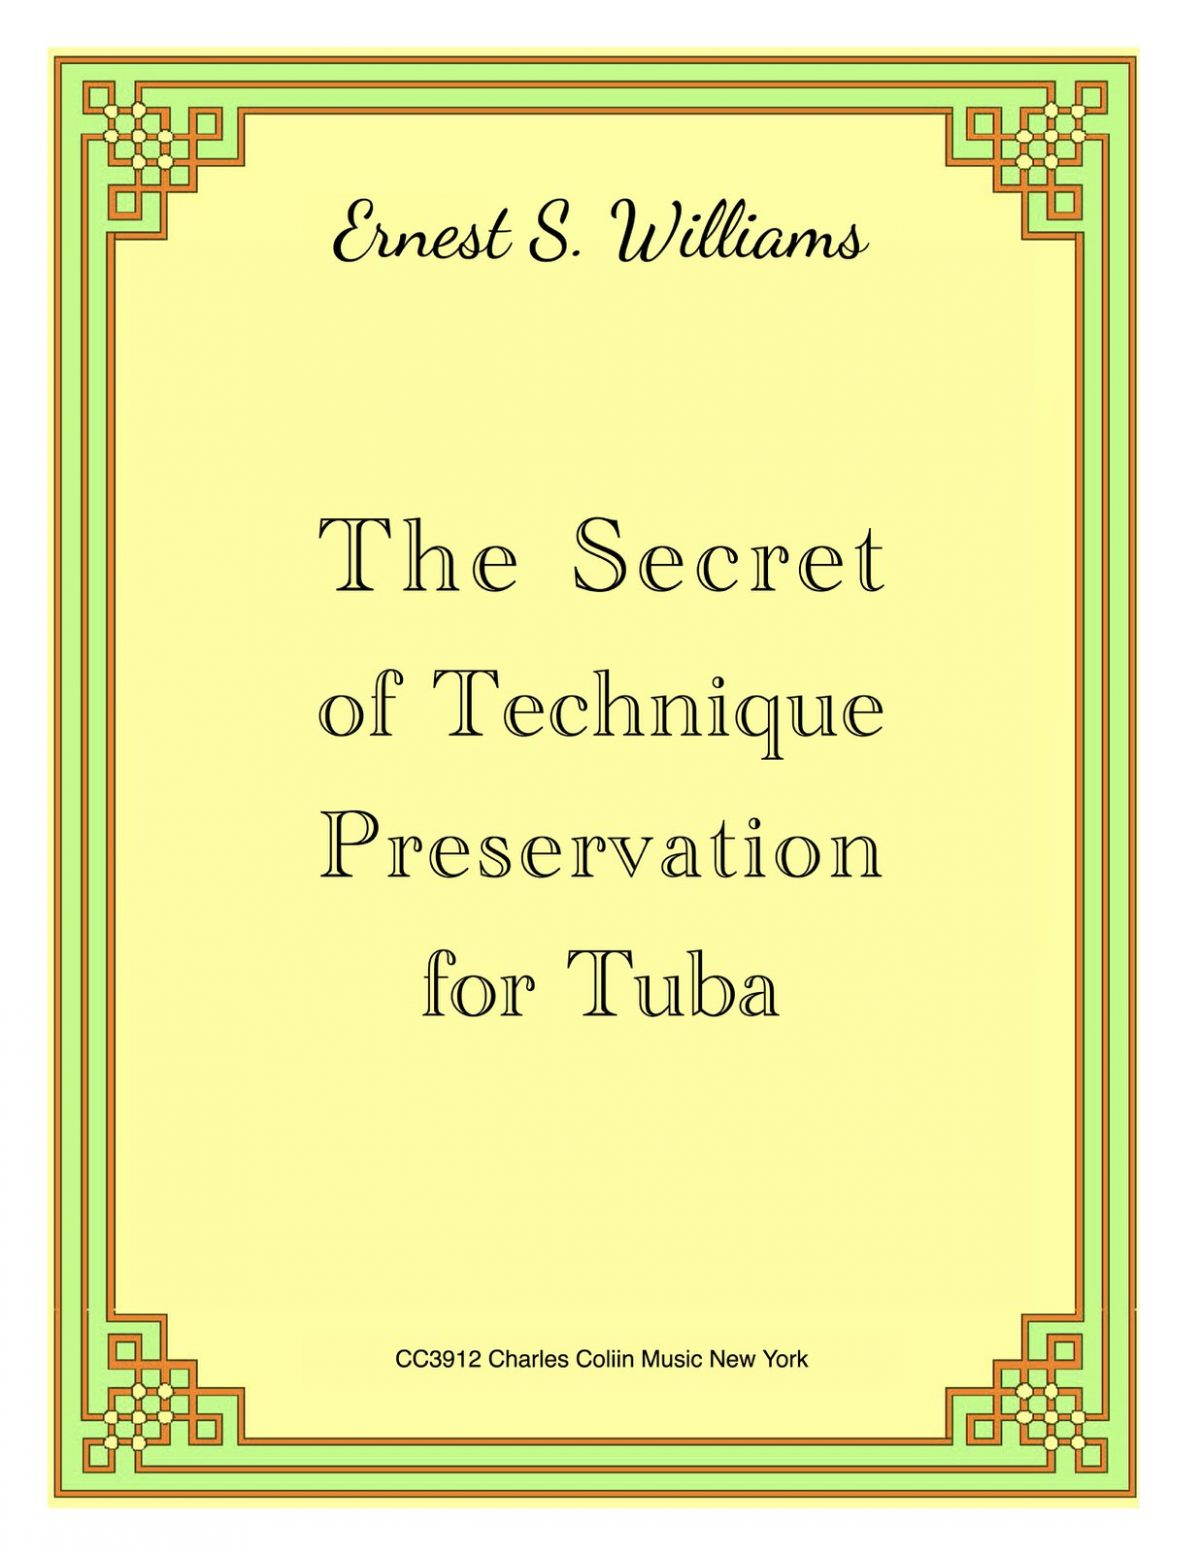 Williams, Secret of Technique Preservation for Tuba Keep Copyrights-p01